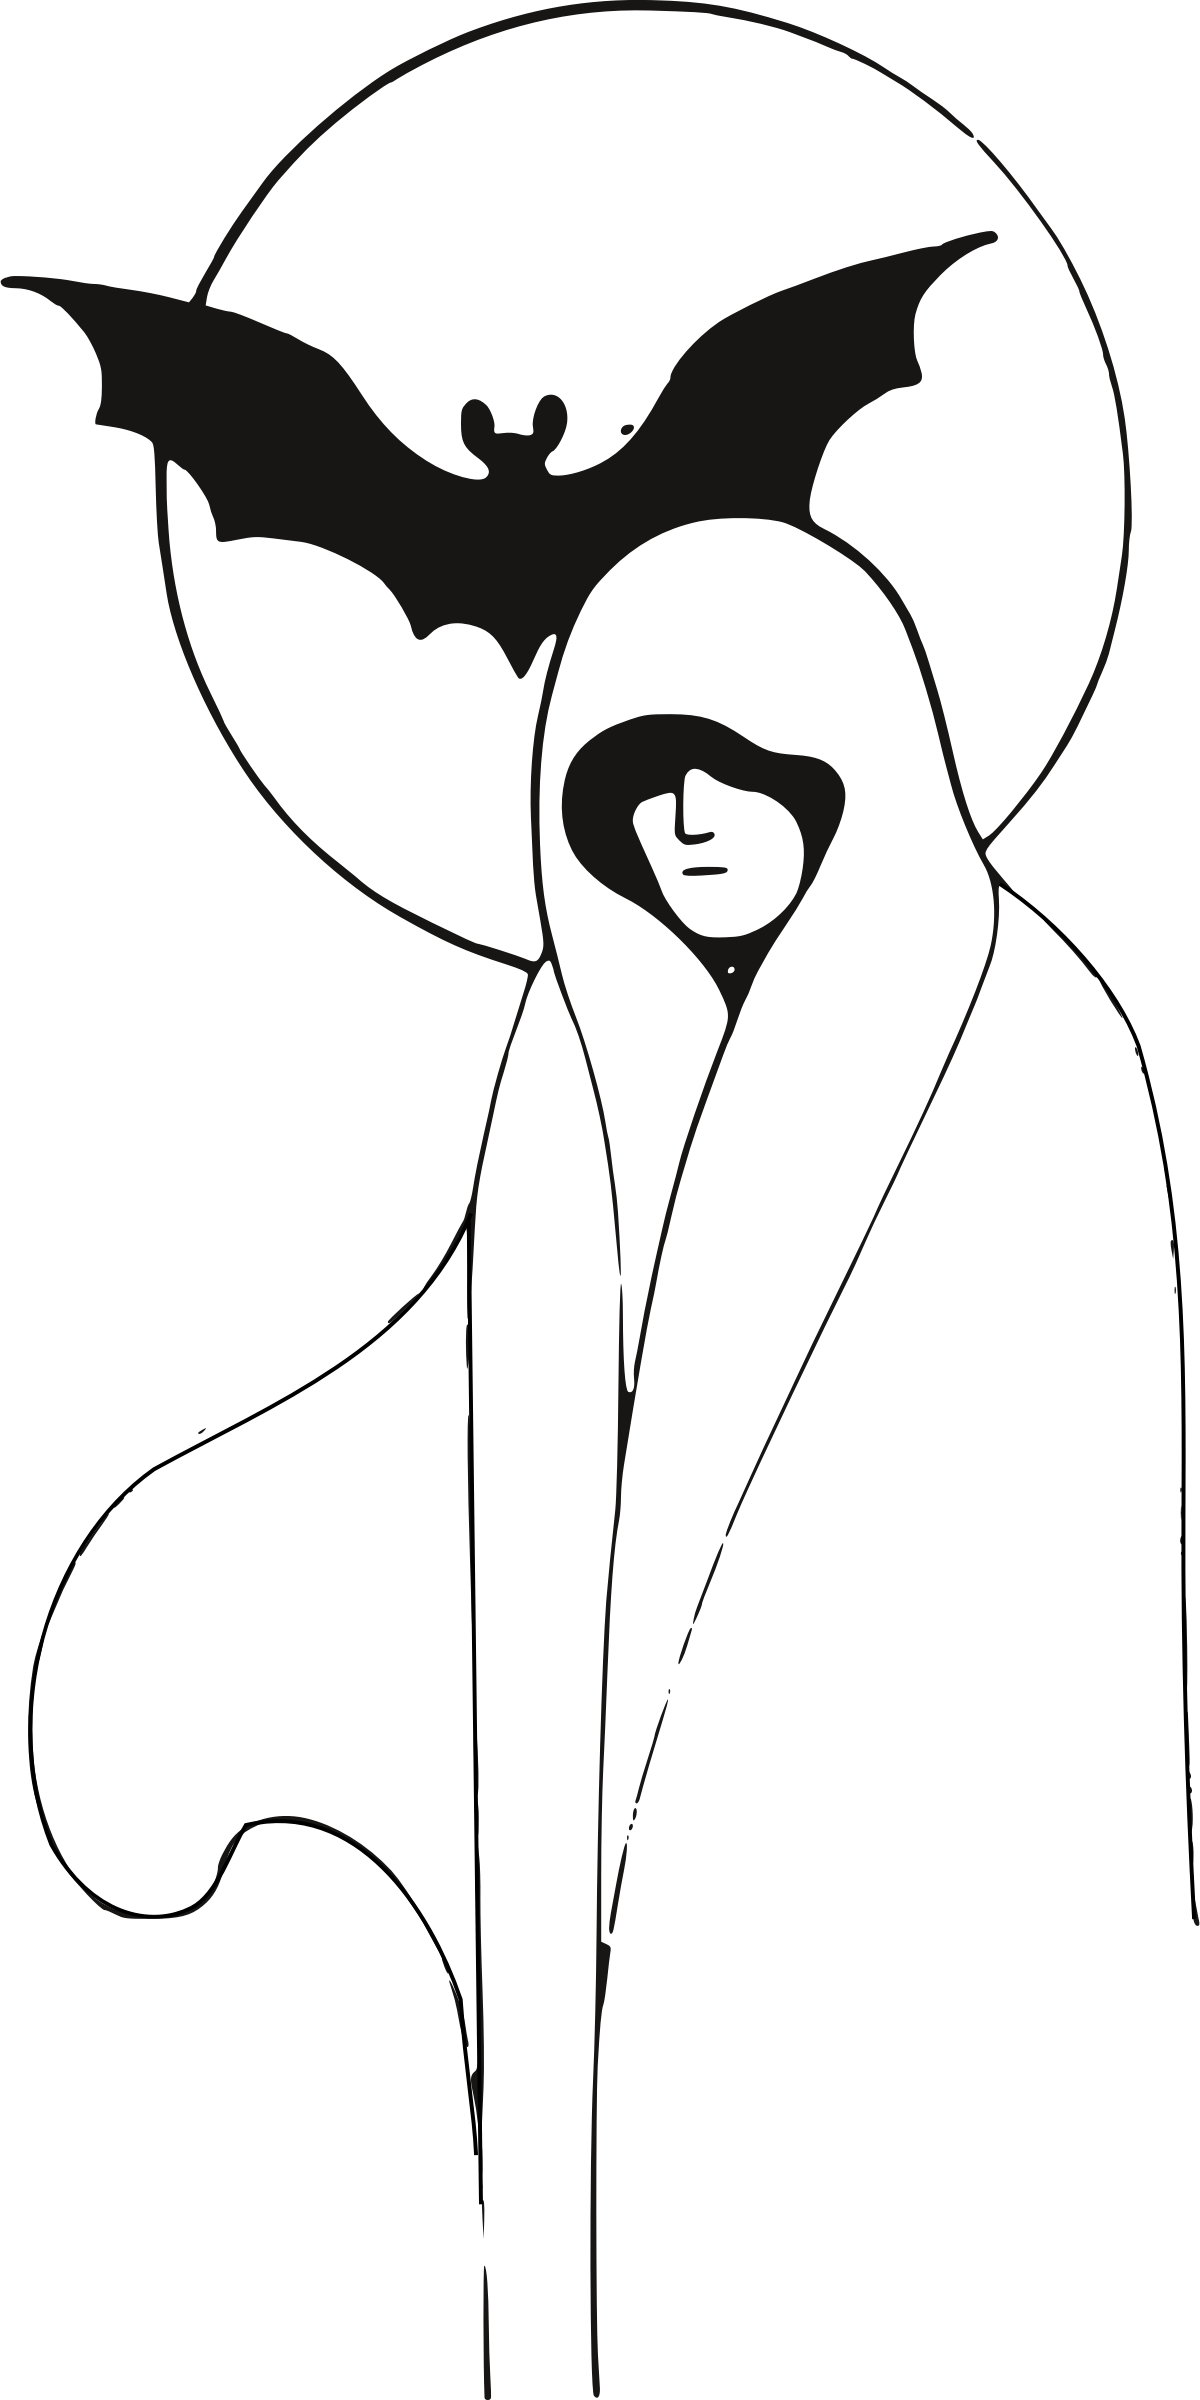 Ghost big image png. Lady clipart line art